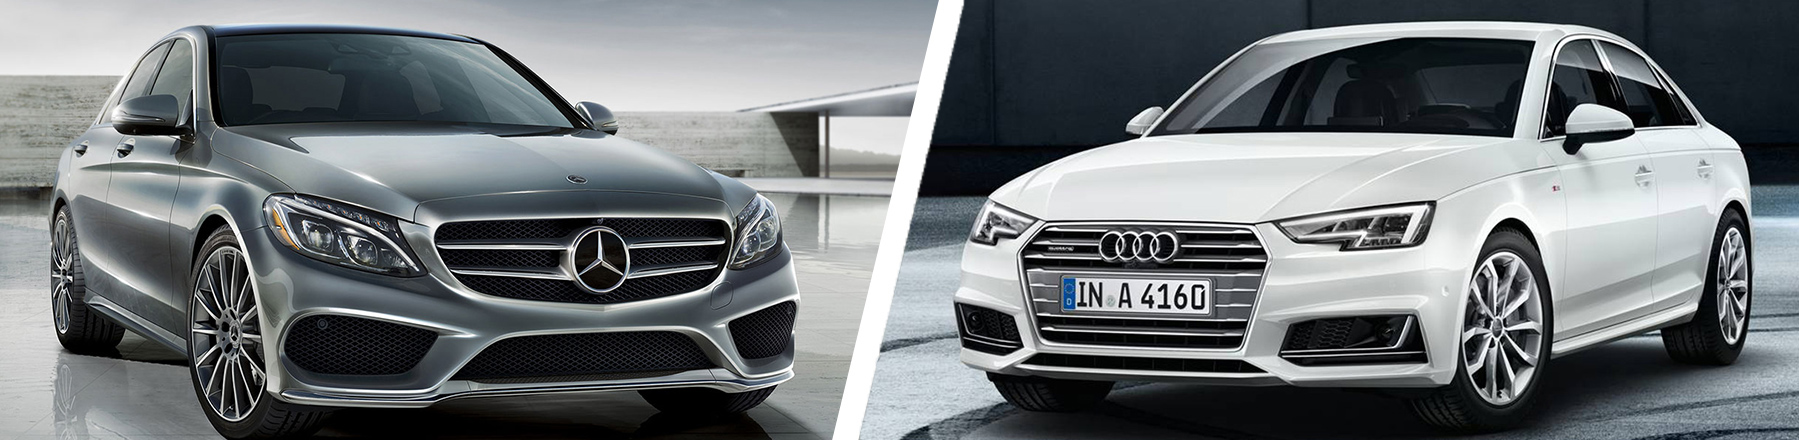 The Mercedes-Benz C-Class Compared to the Audi A4